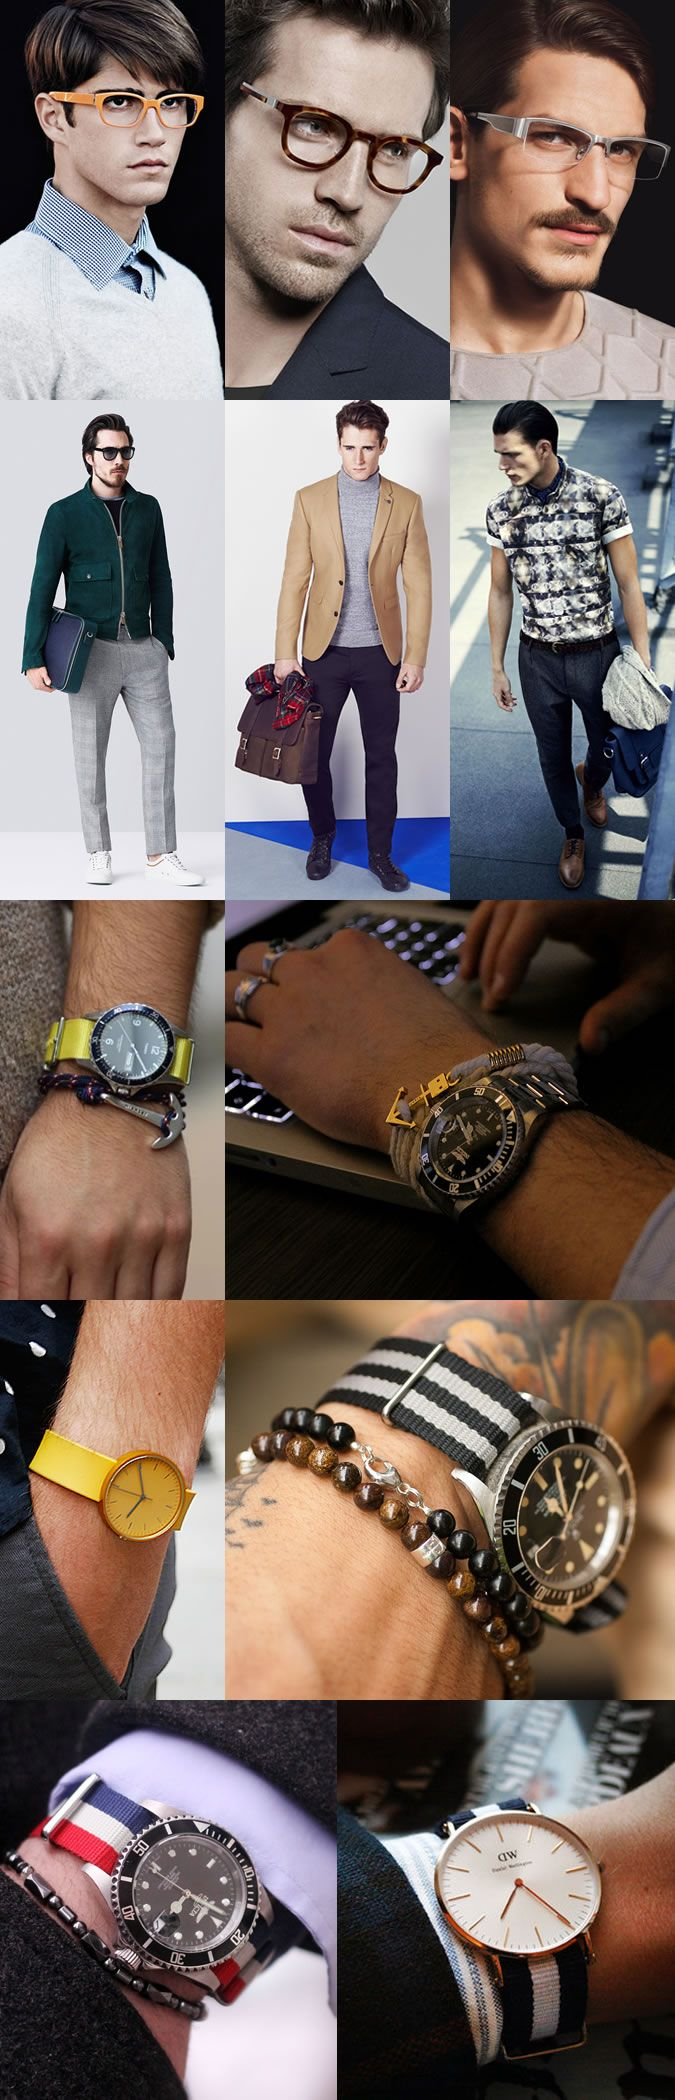 Men's Dress Down Friday Outfit Examples - Dress Down Your Accessories